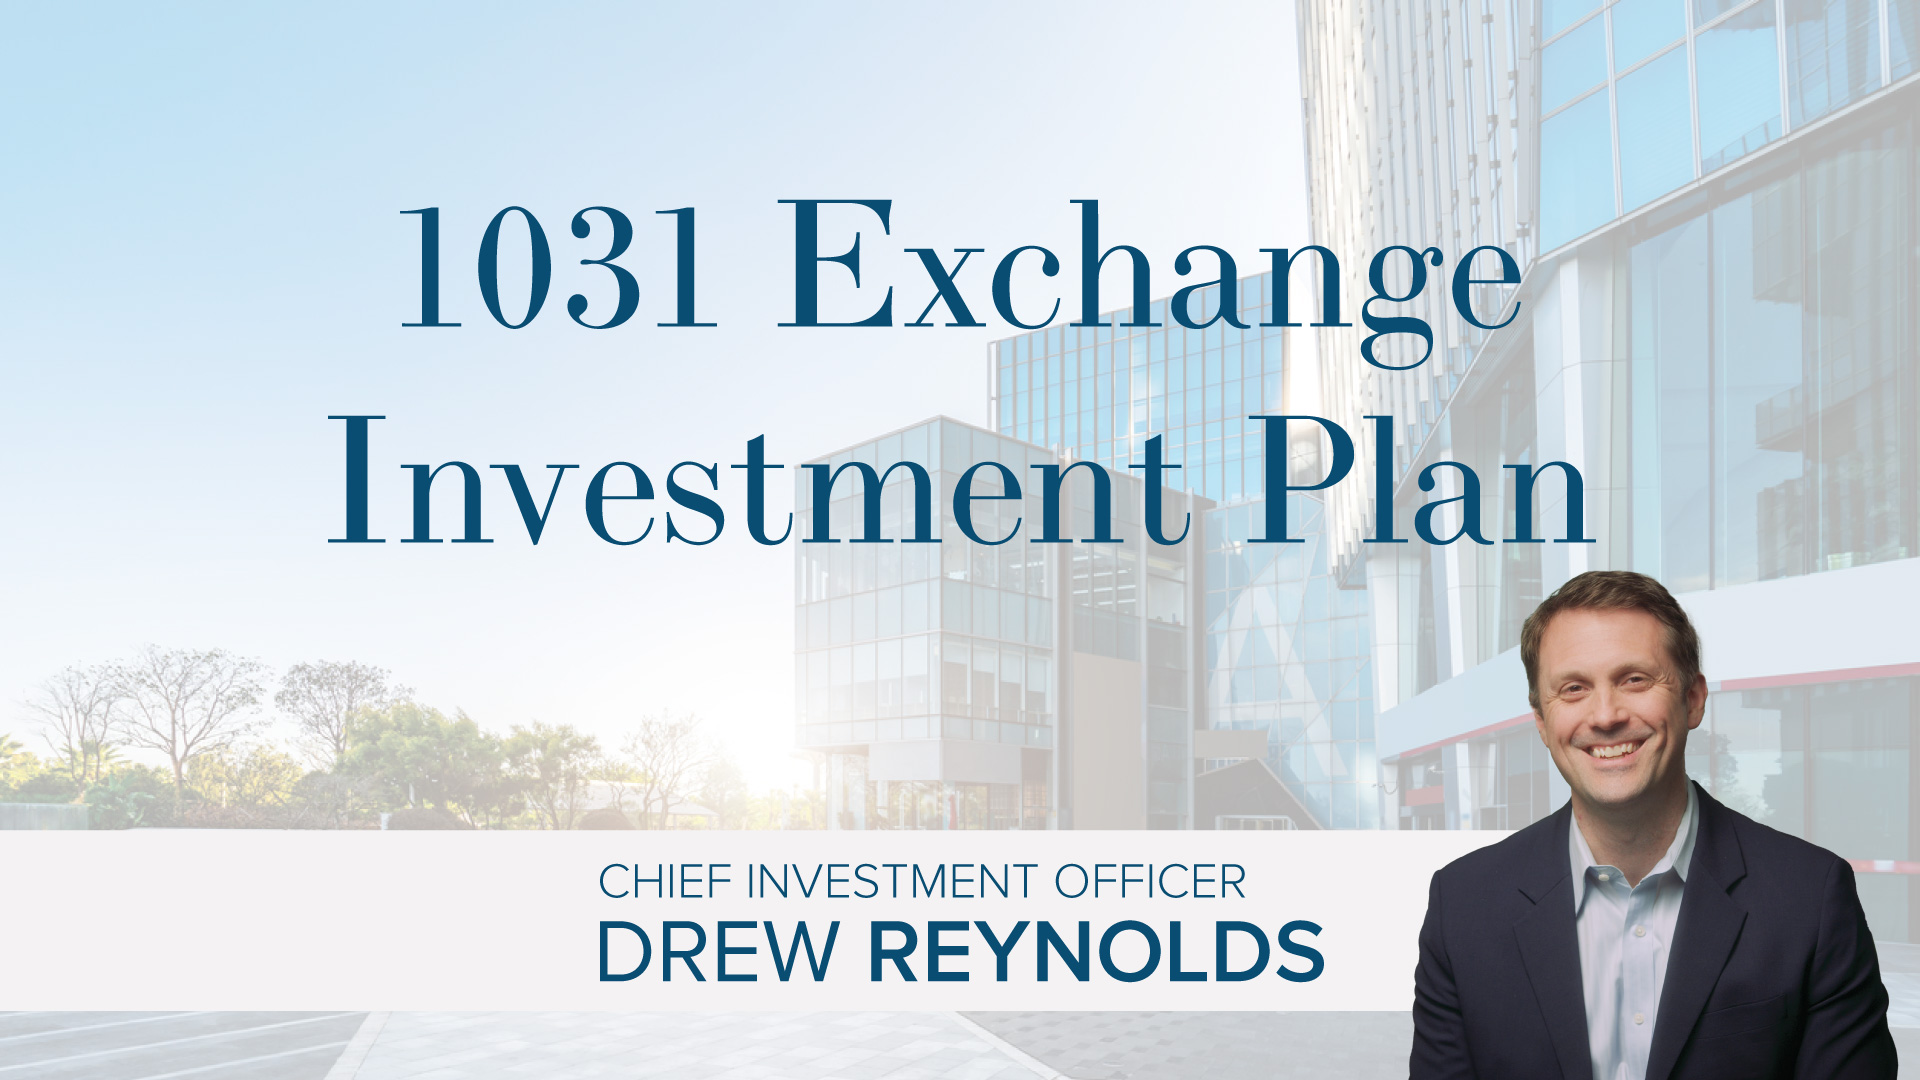 Drew Reynolds: 1031 Exchange Estate Planning